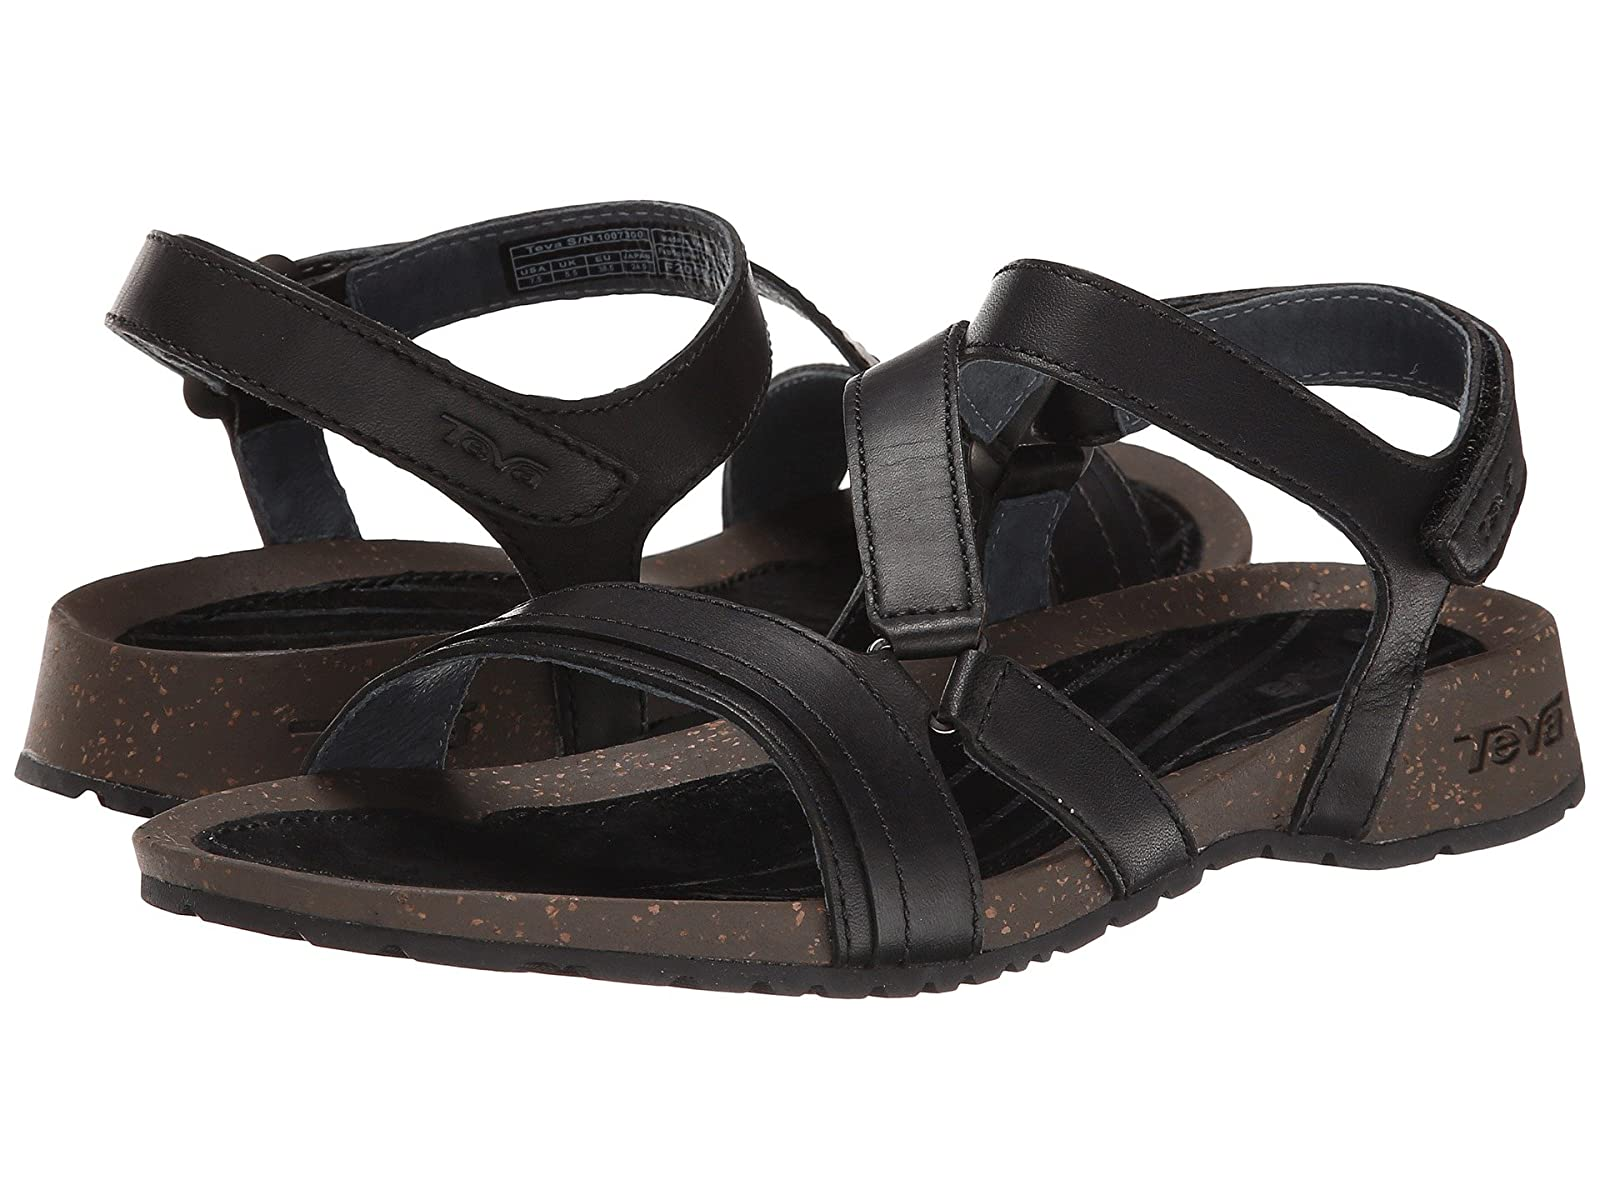 Teva Cabrillo CrossoverCheap and distinctive eye-catching shoes